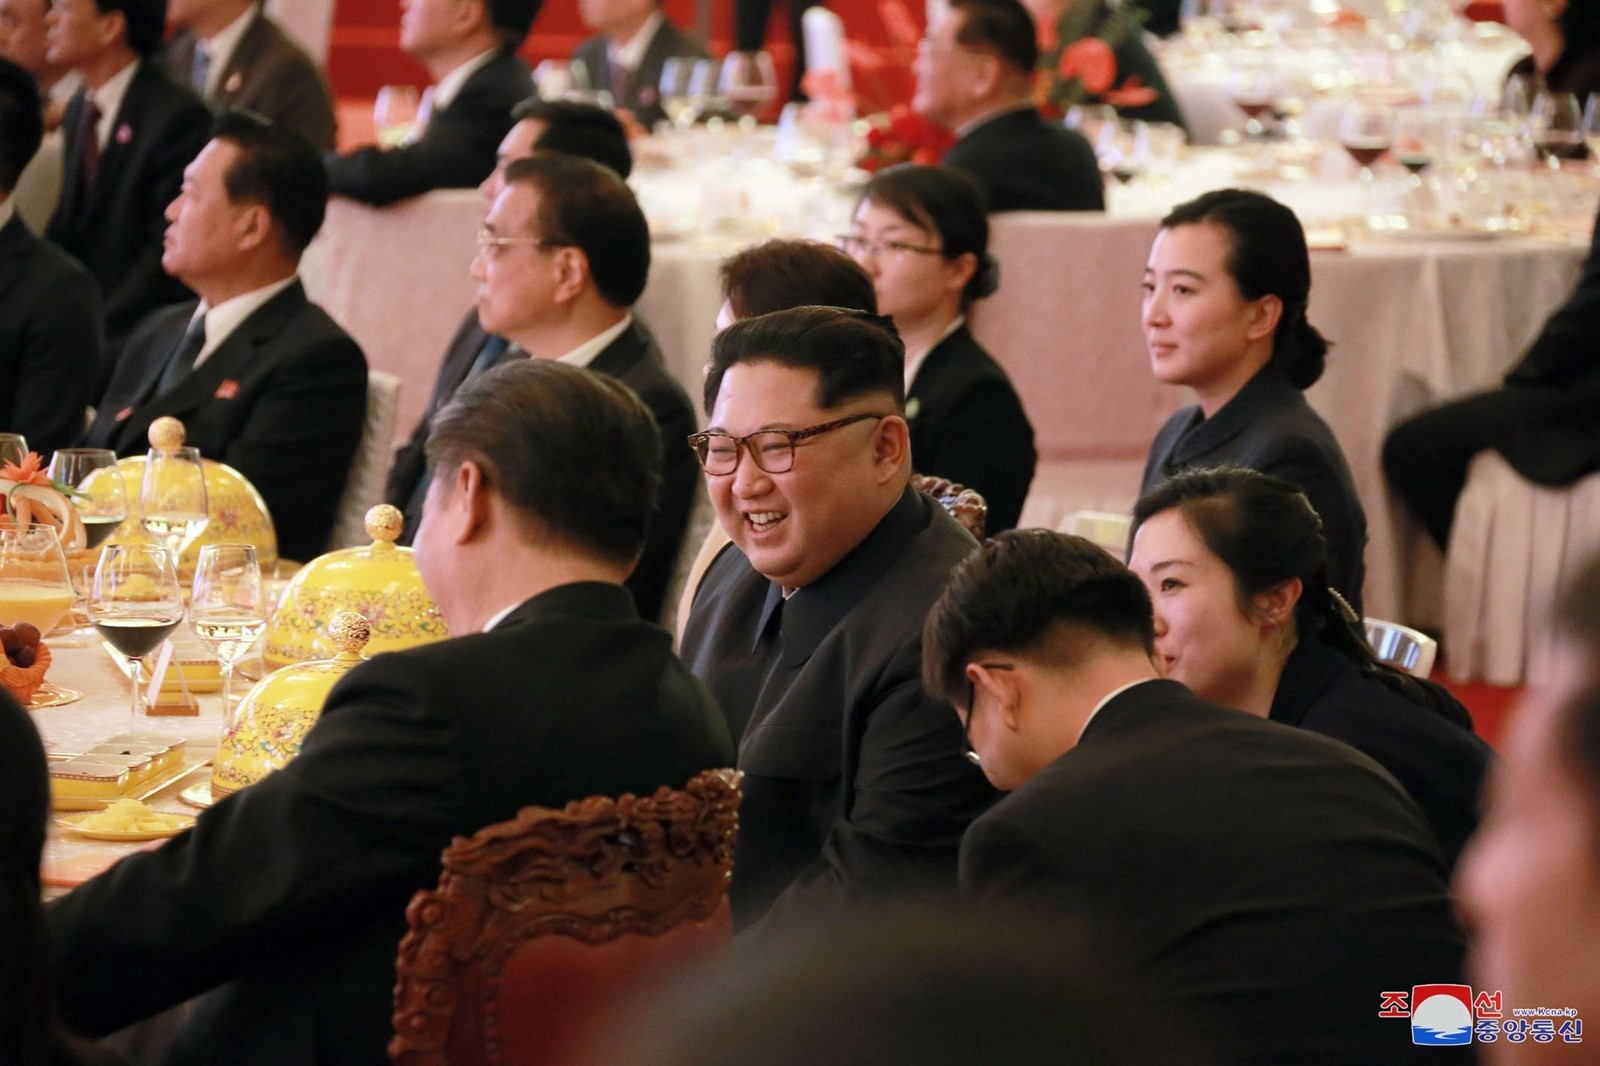 Kim, center, with host Xi at a banquet. The China appearance offered Kim a chance to strengthen his own hand before any talks involving the Koreas. — Photograph: Korean Central News Agency.